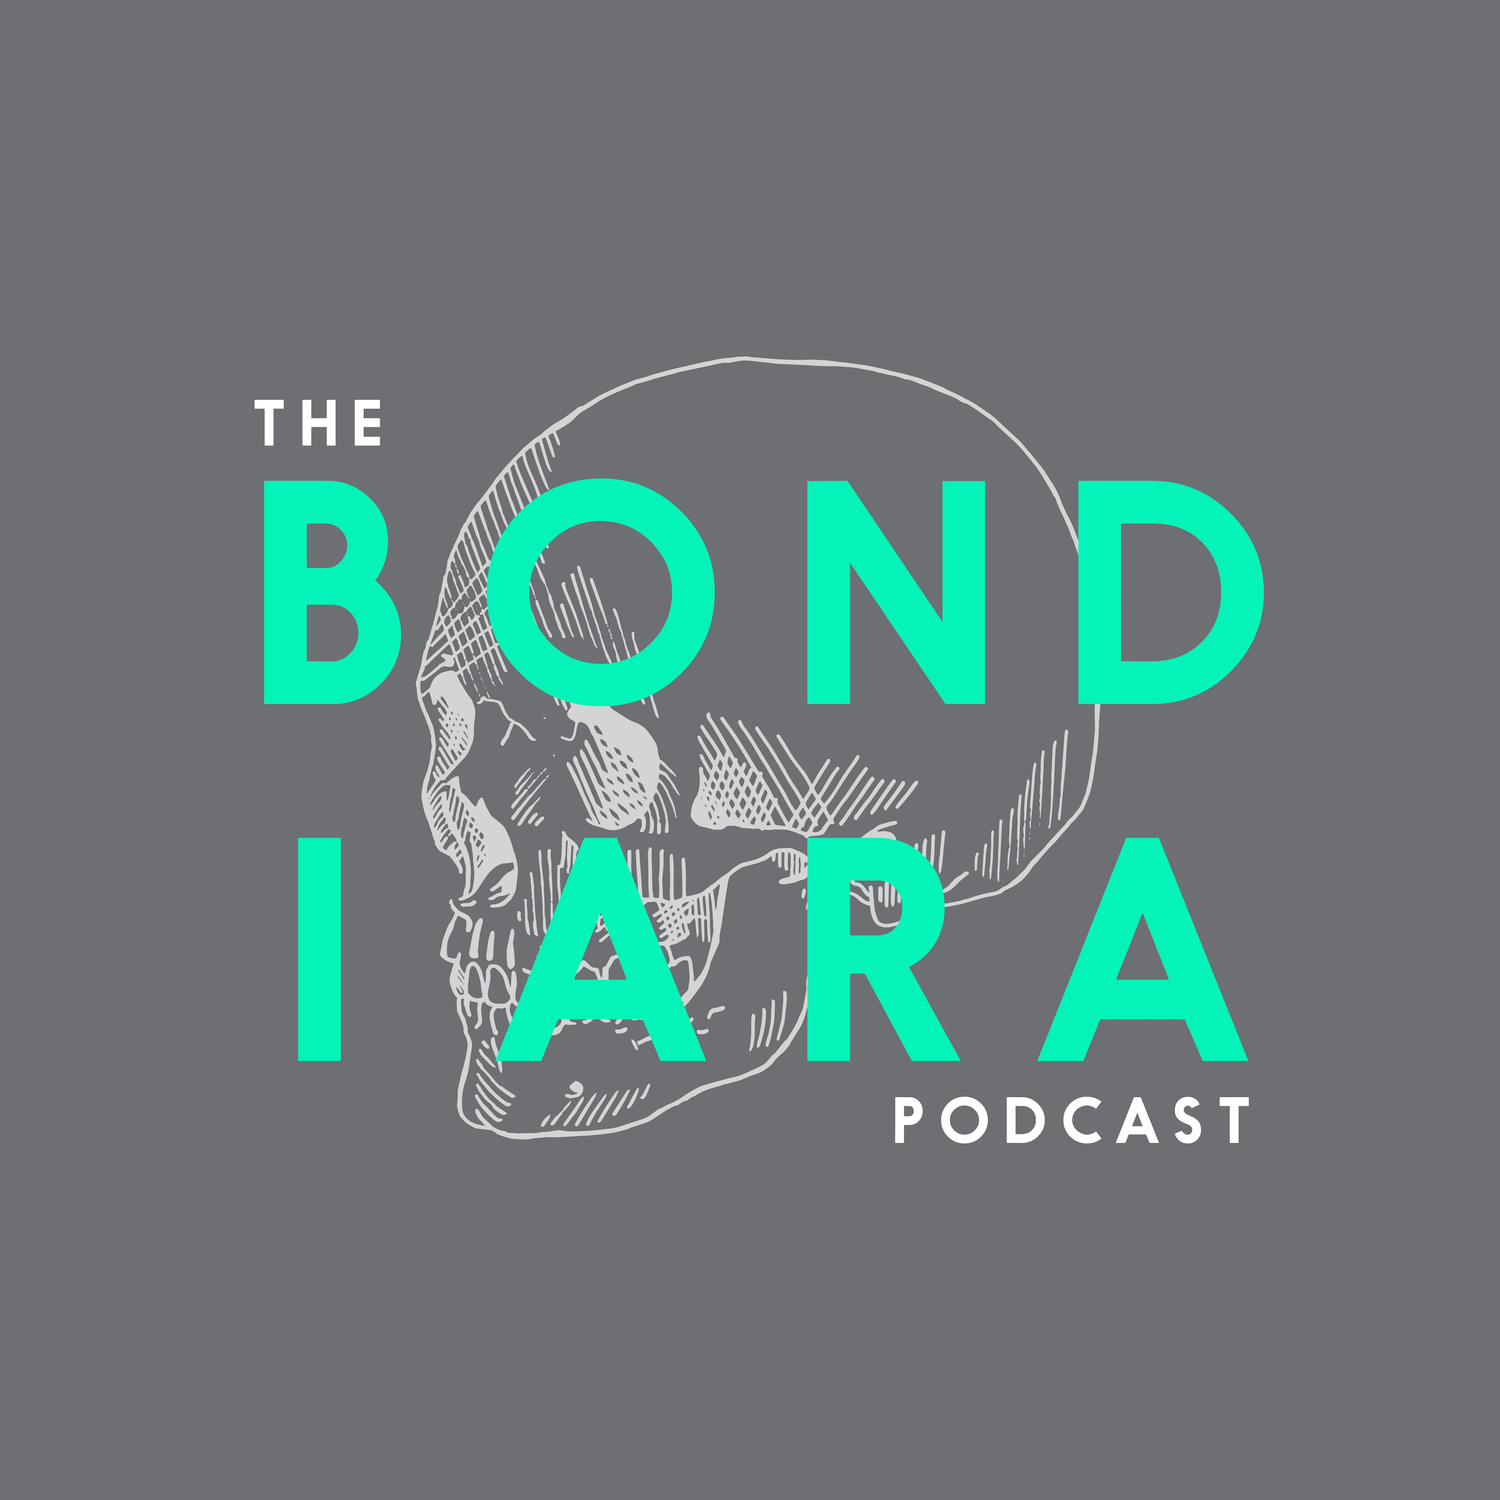 Bondiara Podcast - FoldingLights